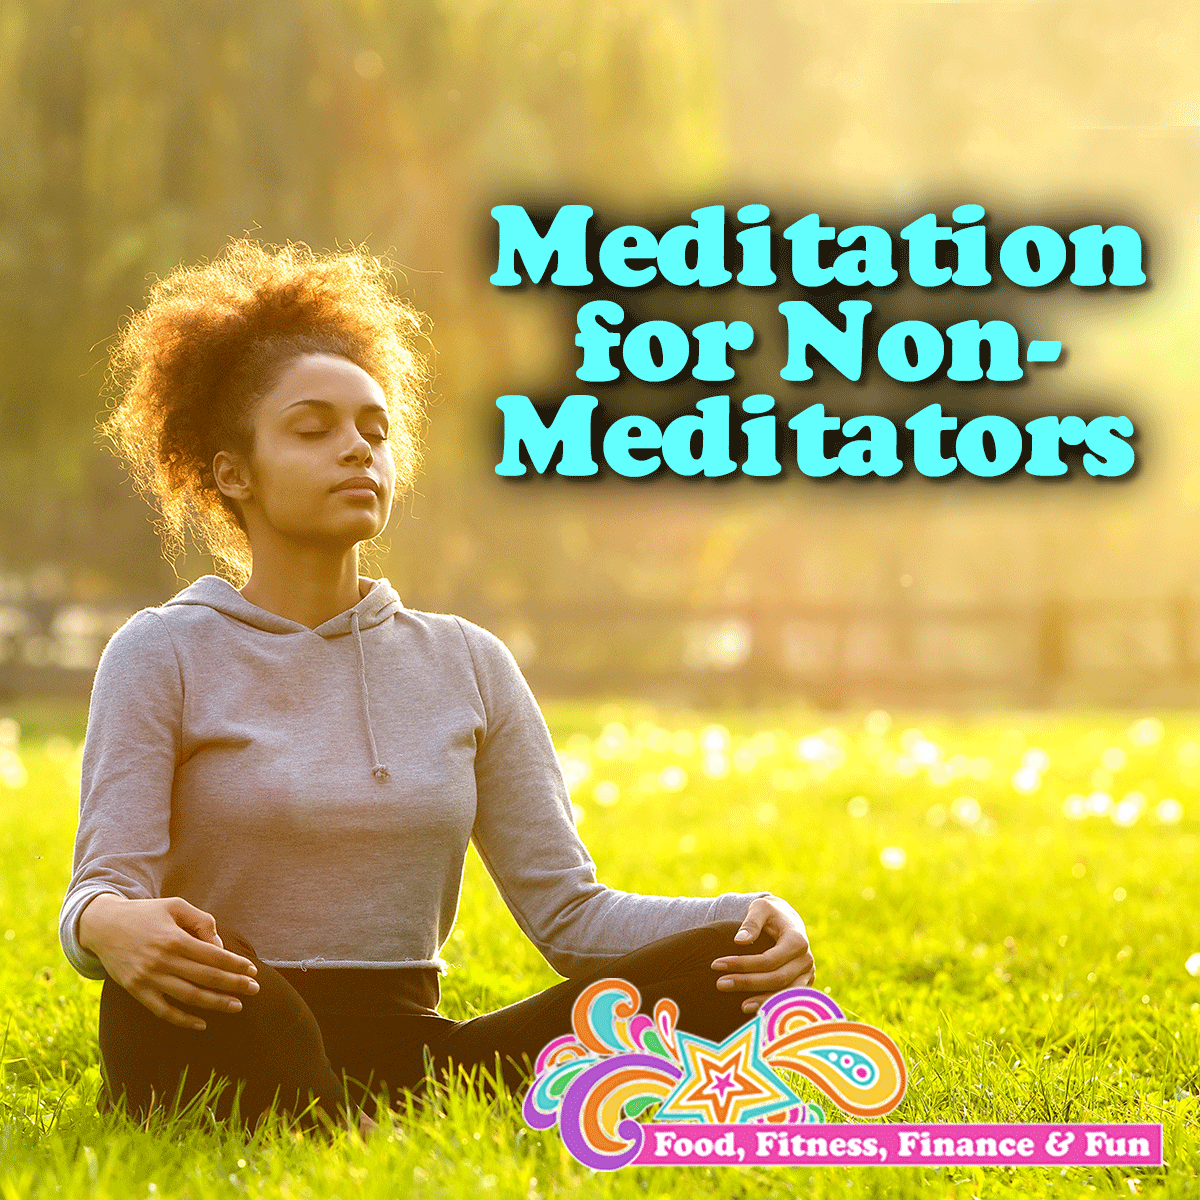 Meditation for Non-Meditators